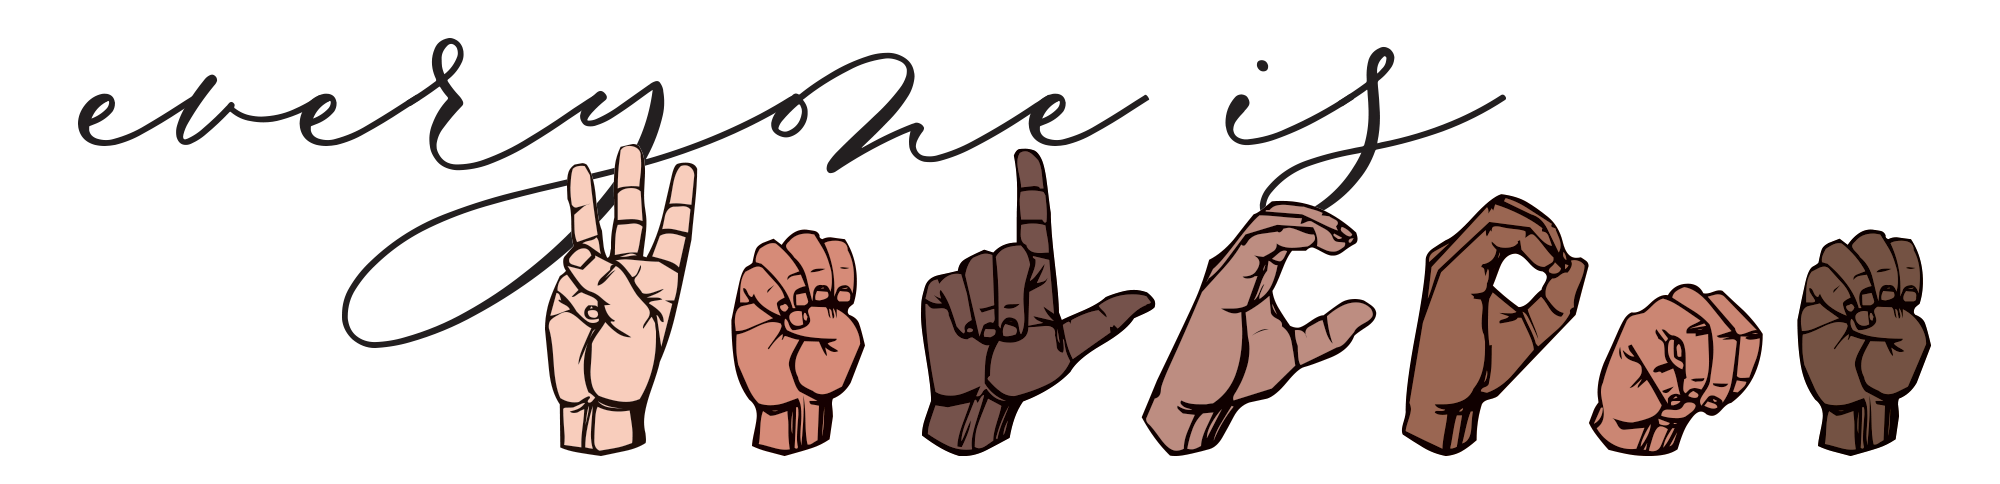 'Everyone is welcome' is shown in American Sign Language